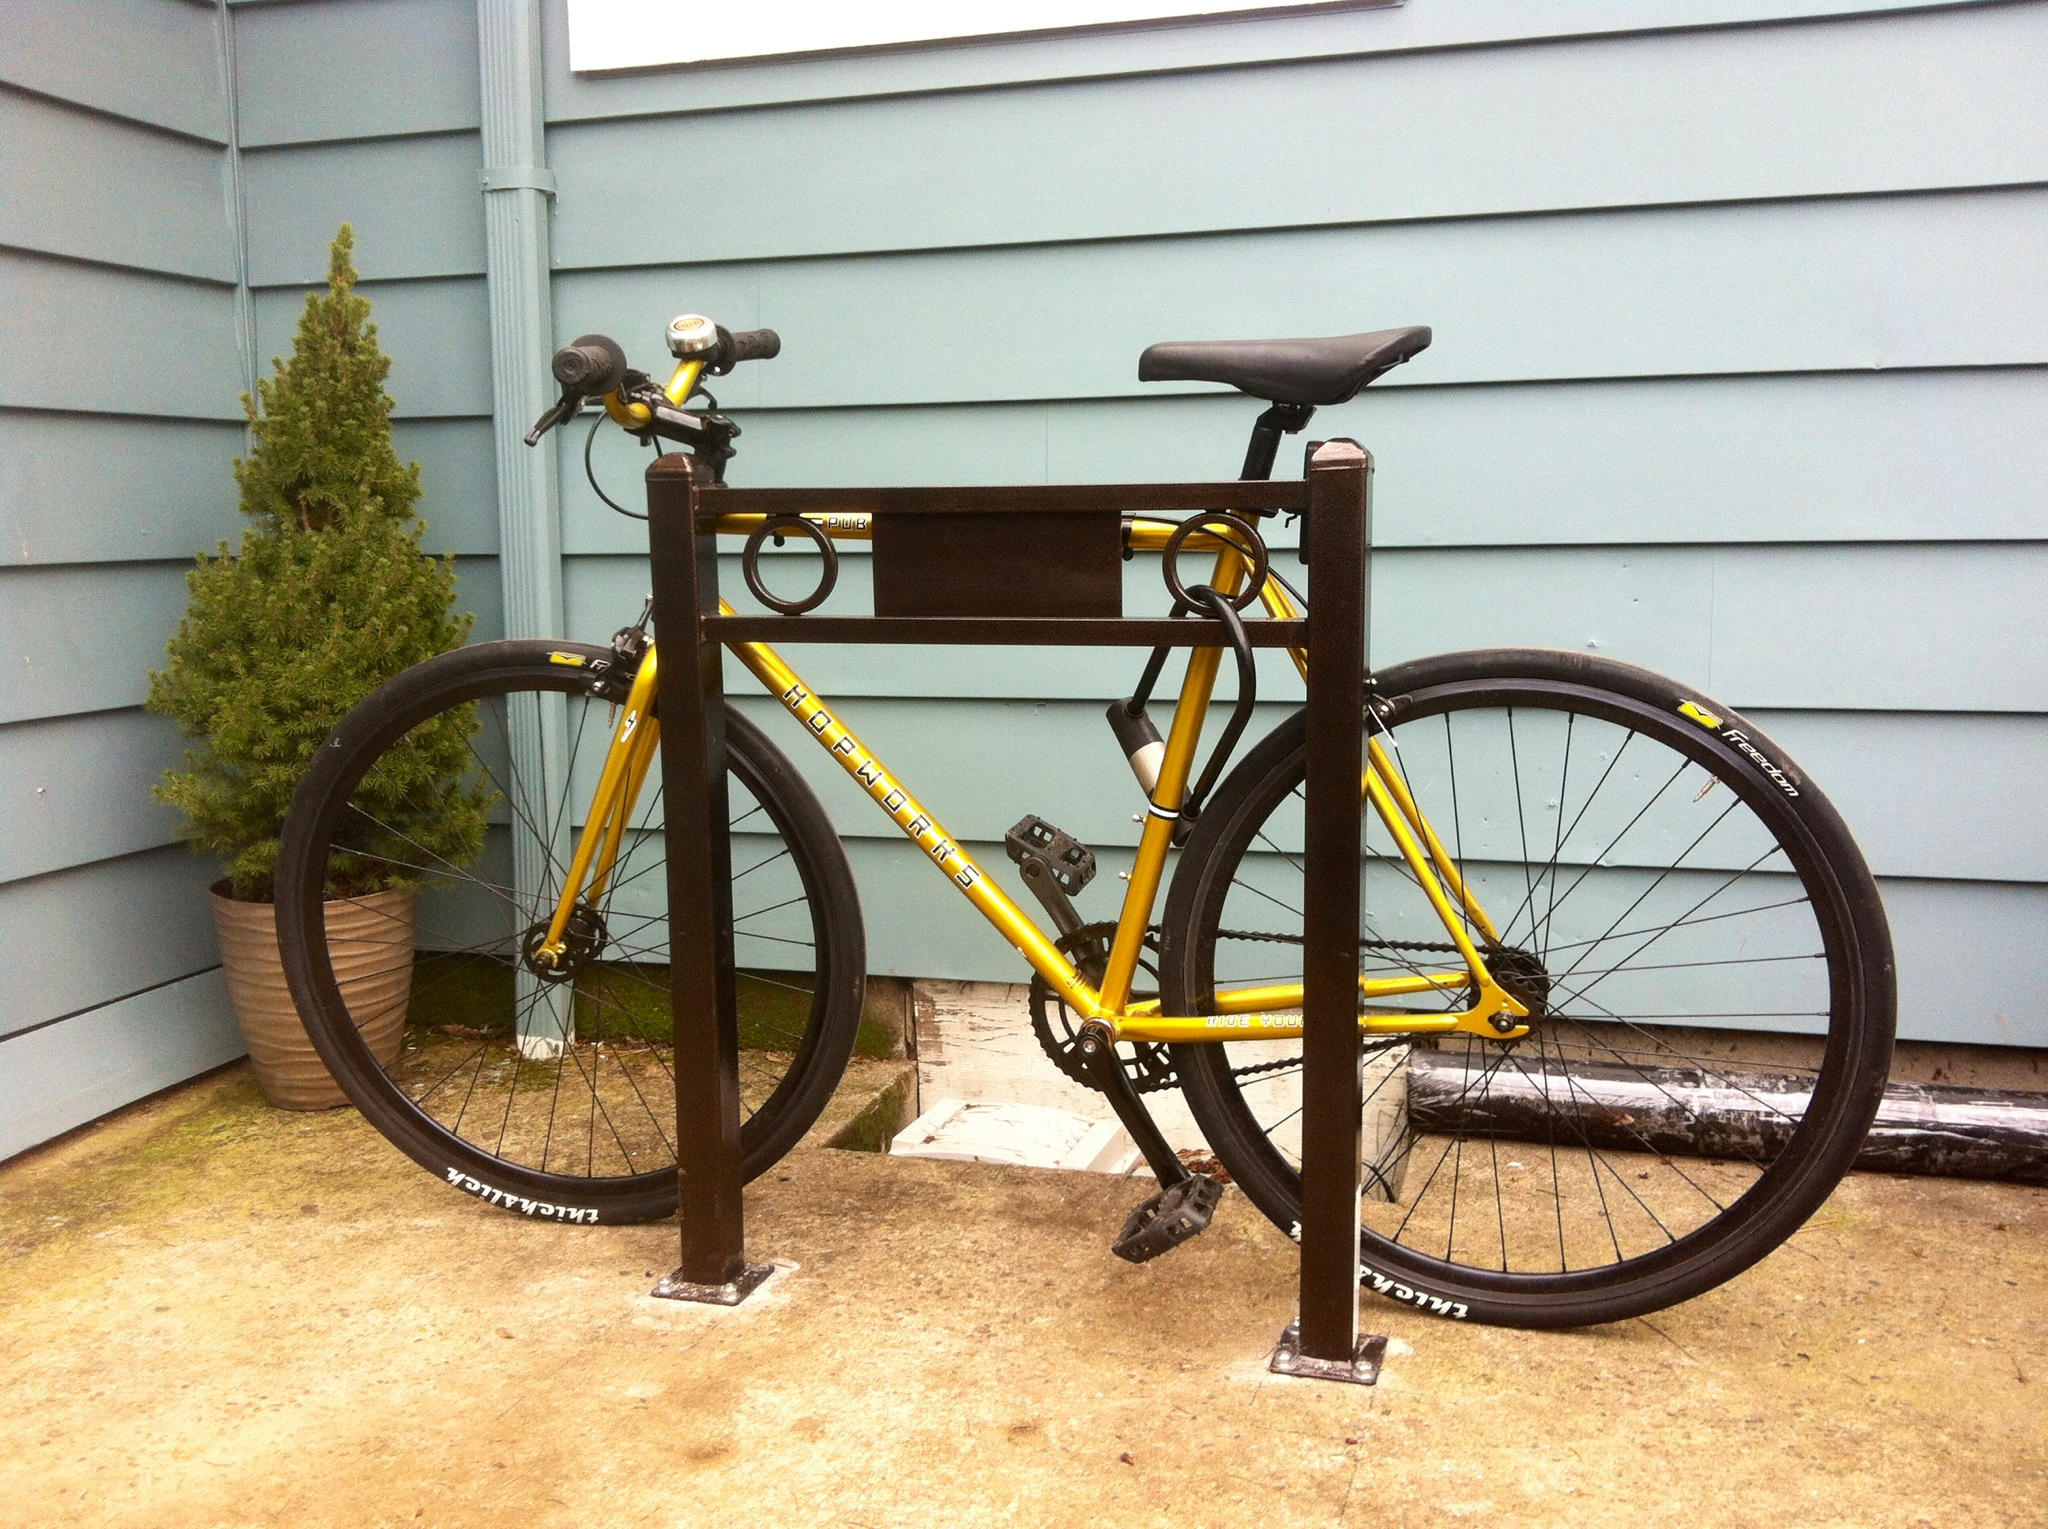 gallery here 39 s how portlanders store their bikes at home. Black Bedroom Furniture Sets. Home Design Ideas